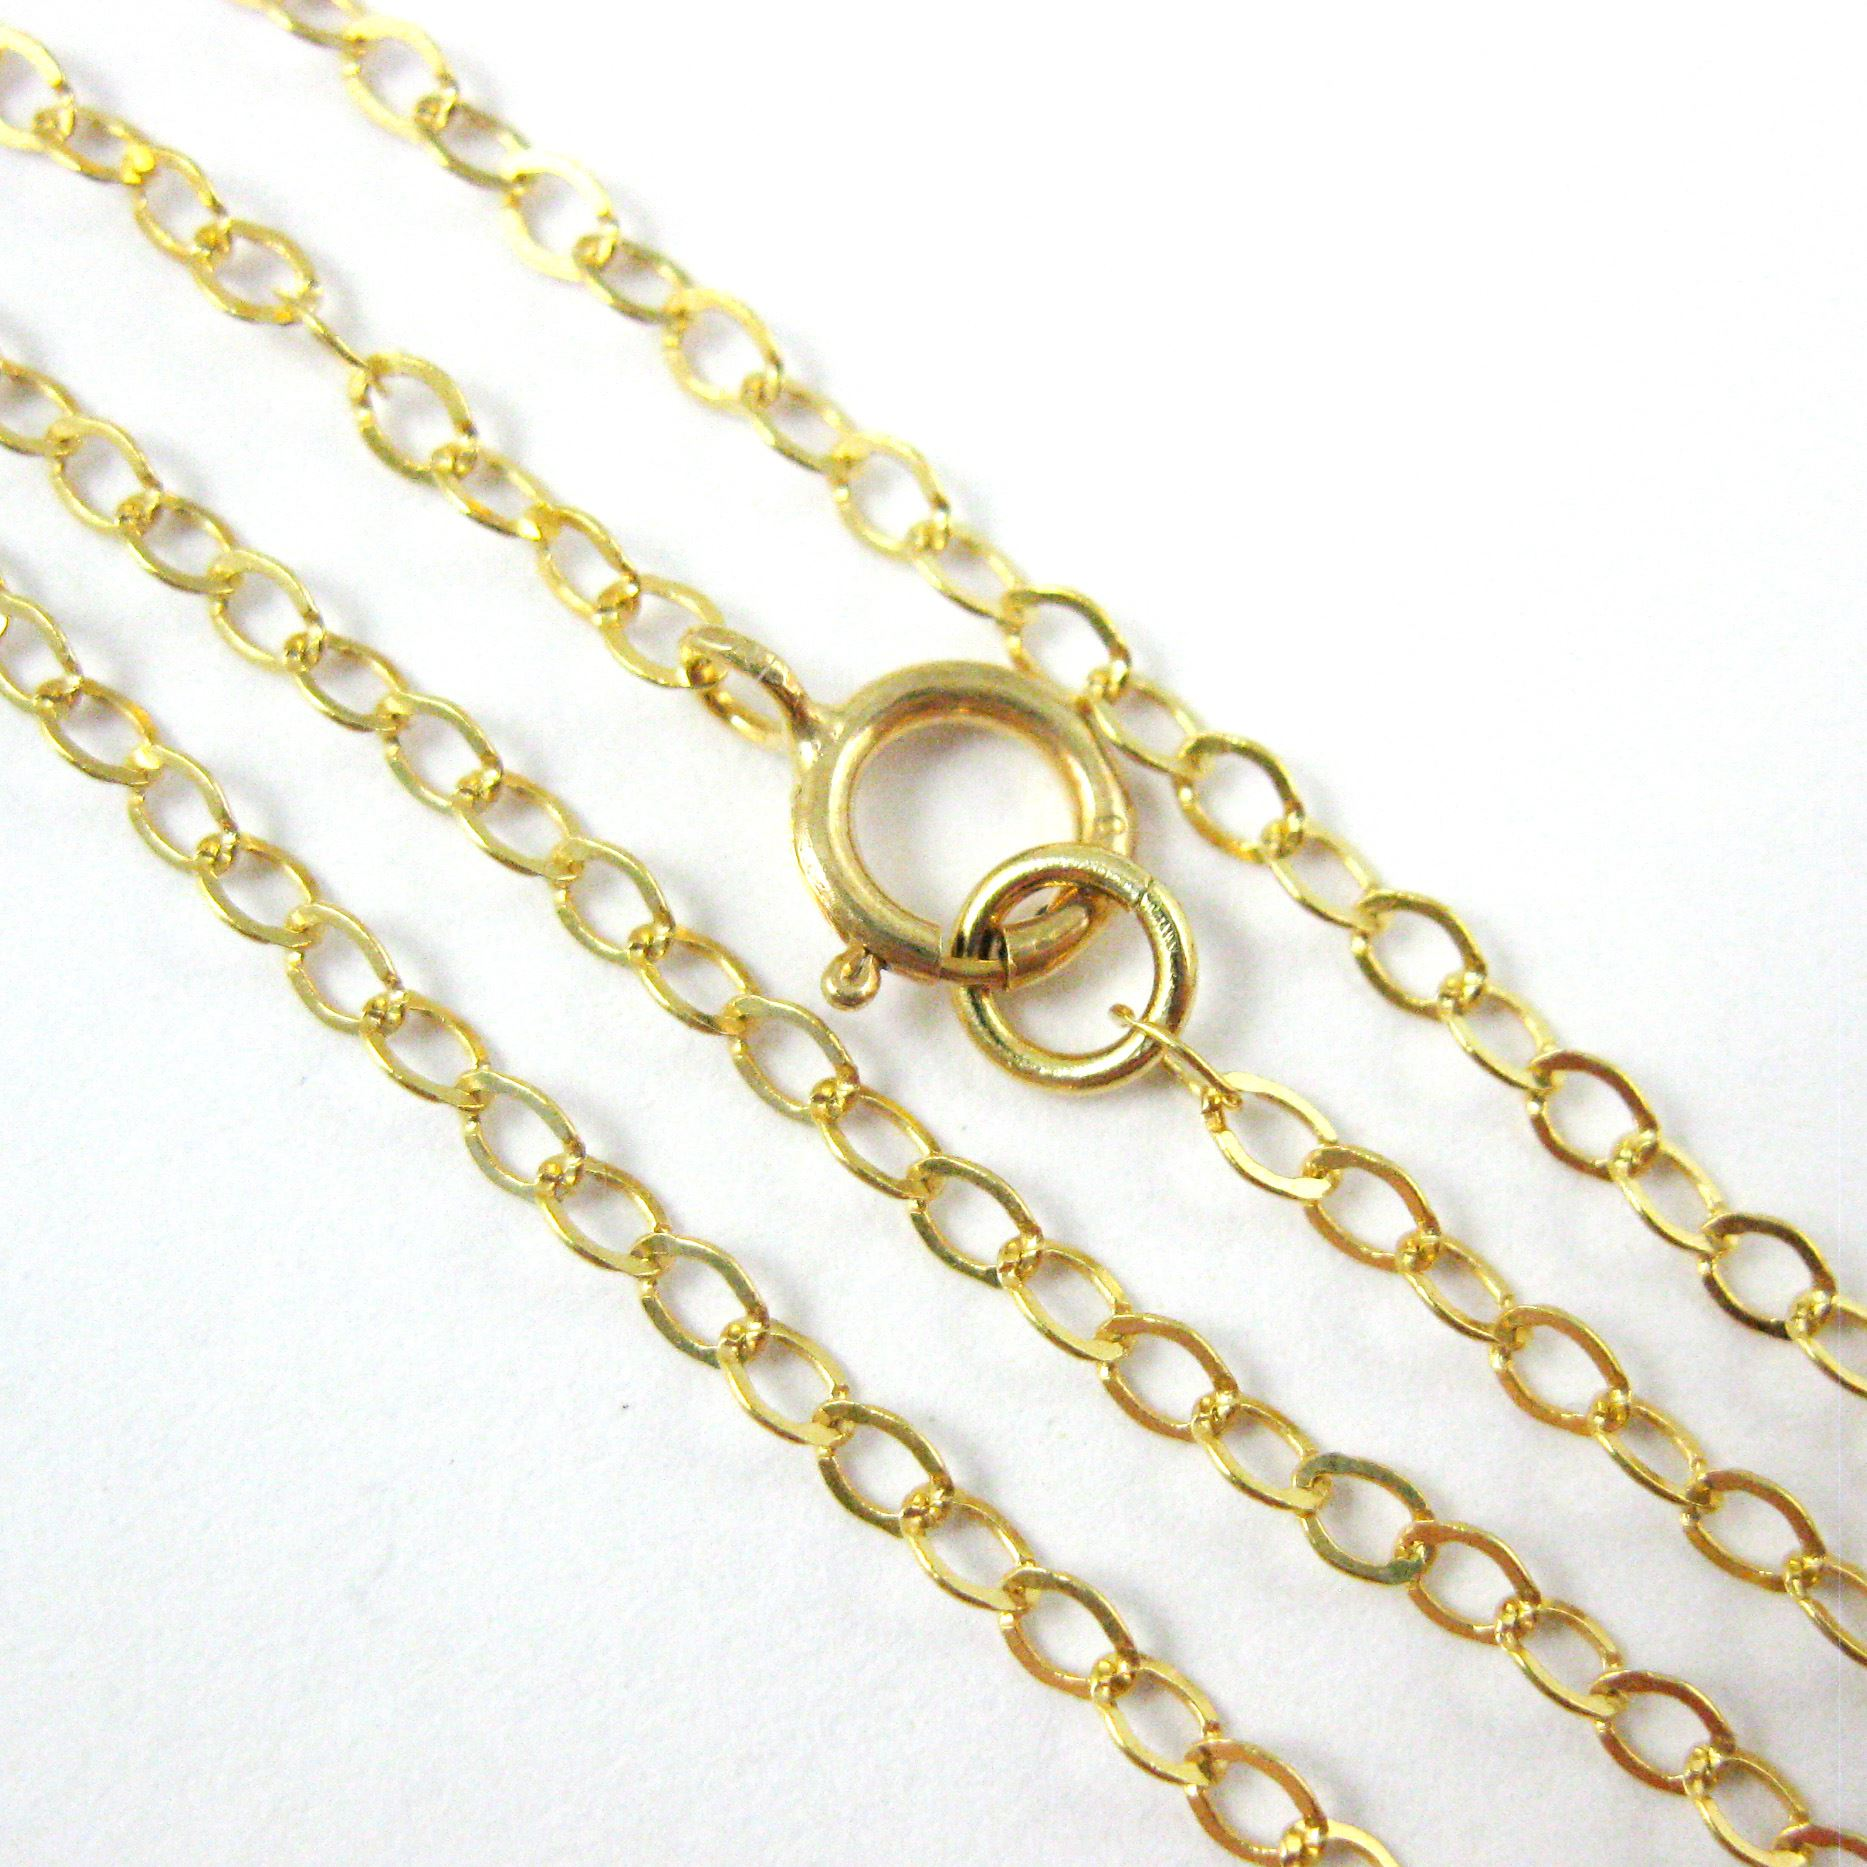 22K Gold plated Silver Necklace - 925 Italian Sterling Silver Necklace Chain - 2.5 x 2mm Light Flat Cable - Long Necklace - All Sizes